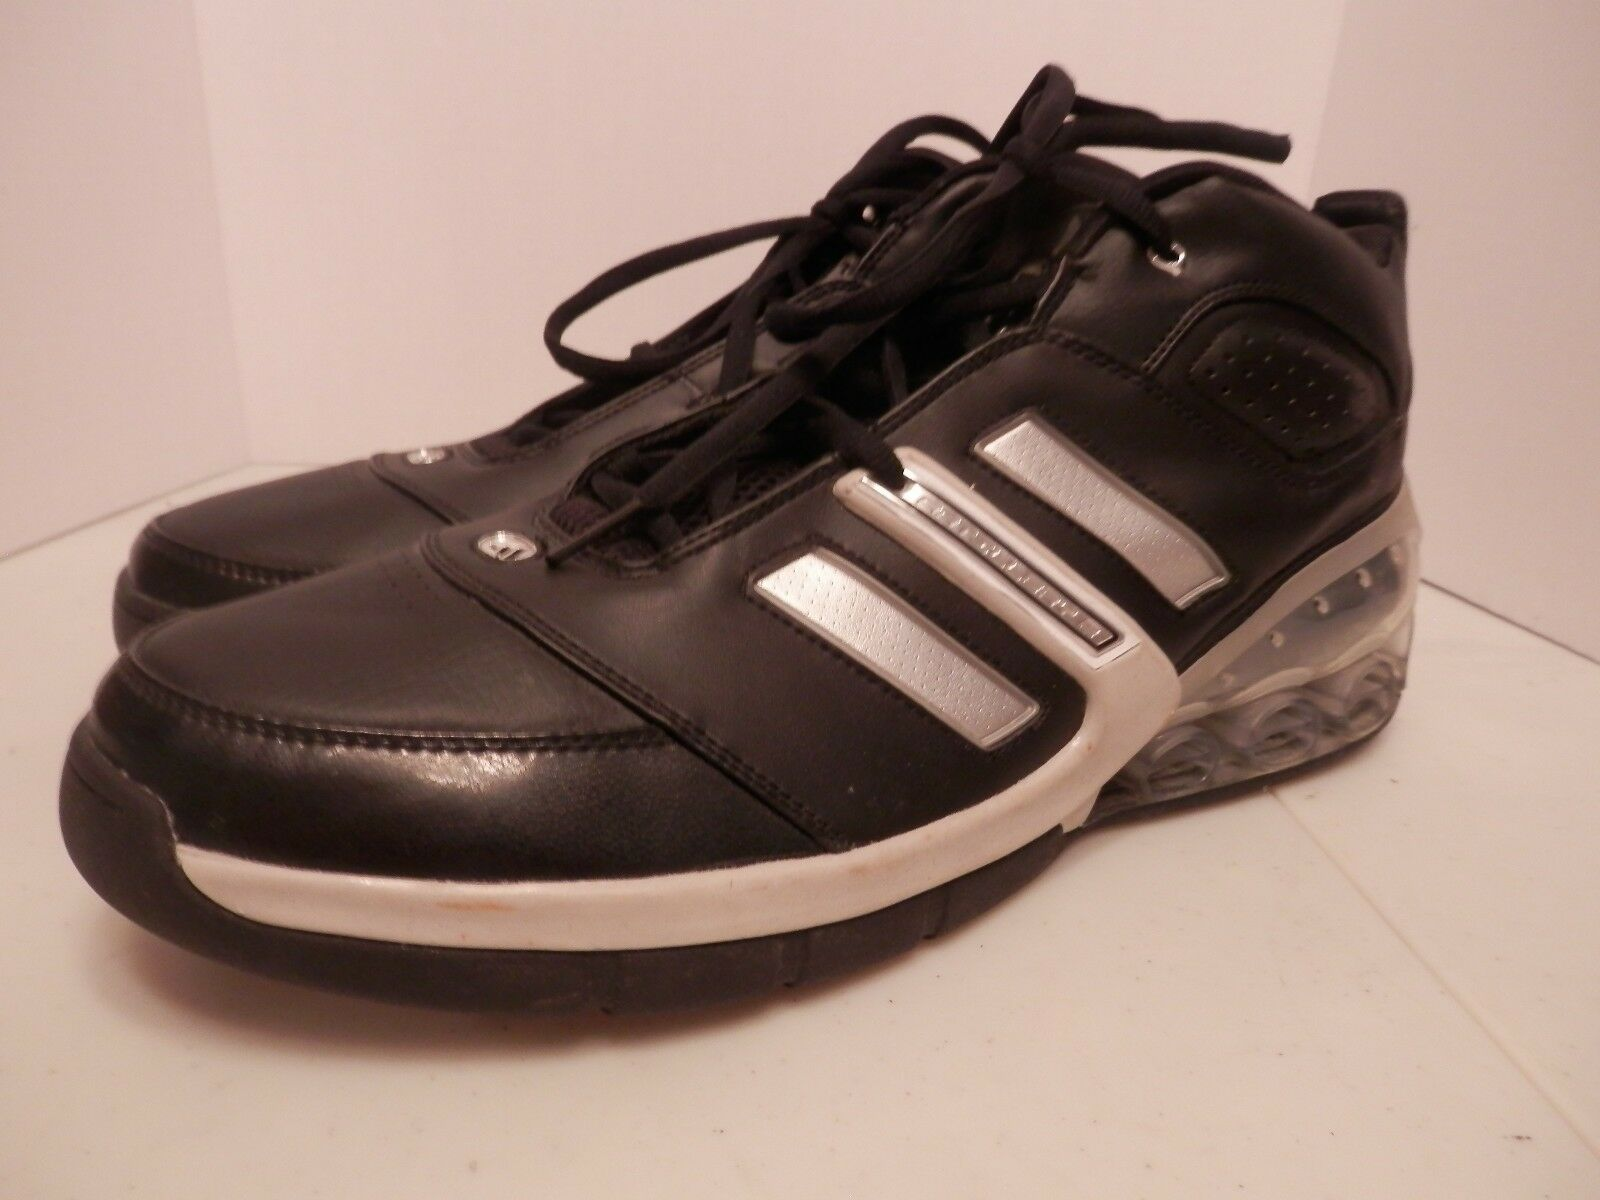 Adidas Artillary 2 Bounce Black Leather Sneakers-Men's Size 18-Great Condition